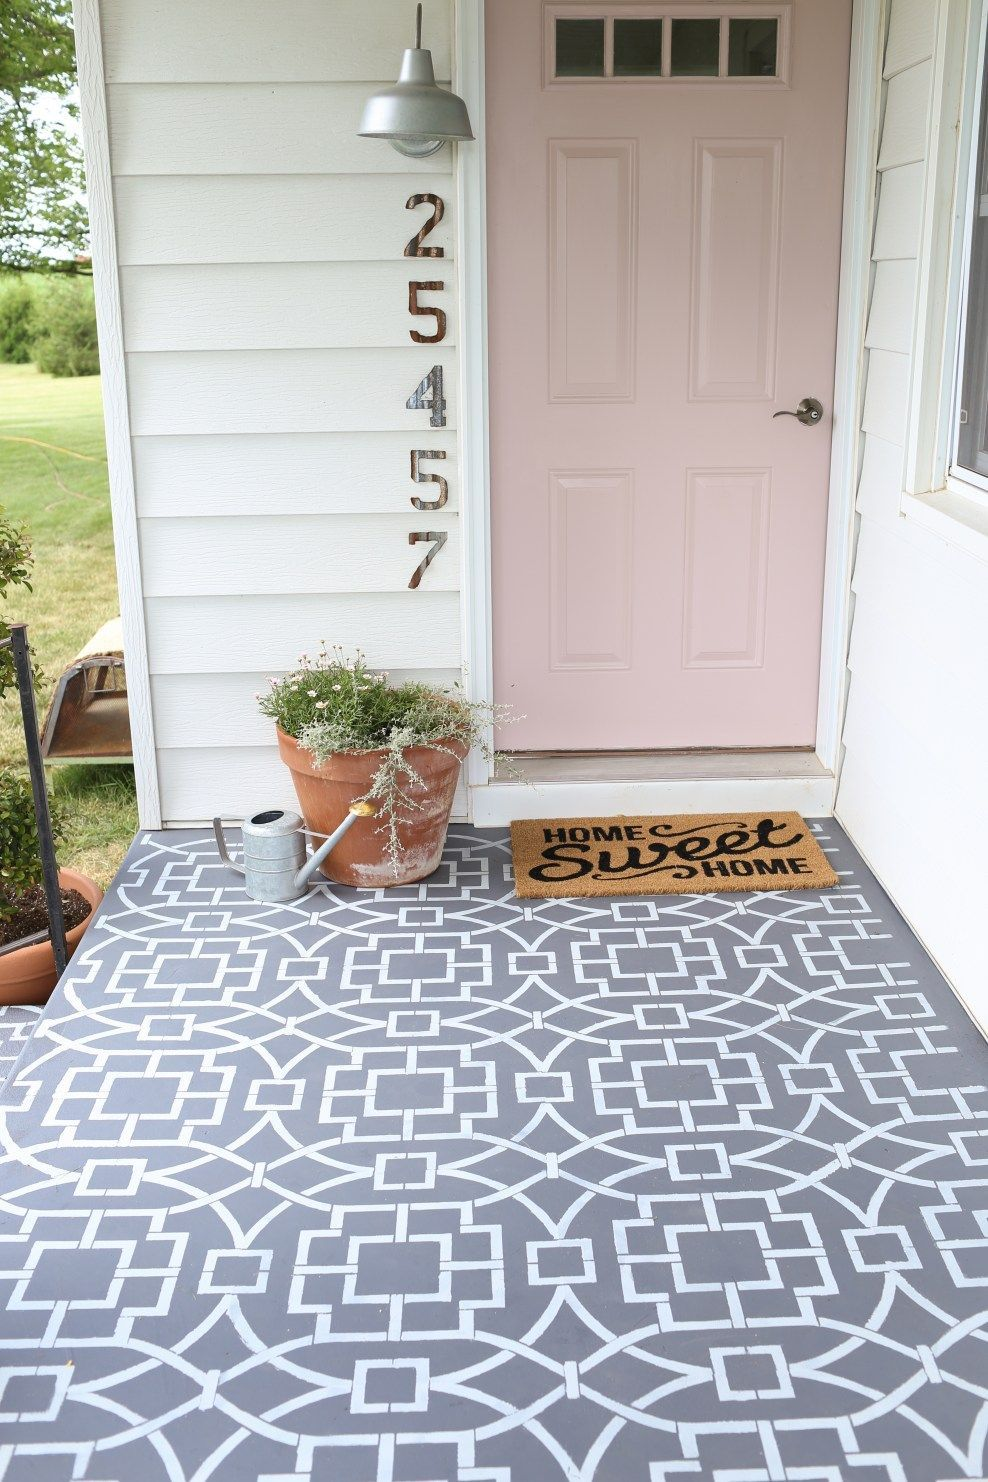 use a stencil and paint to create a cement tile look on your porch